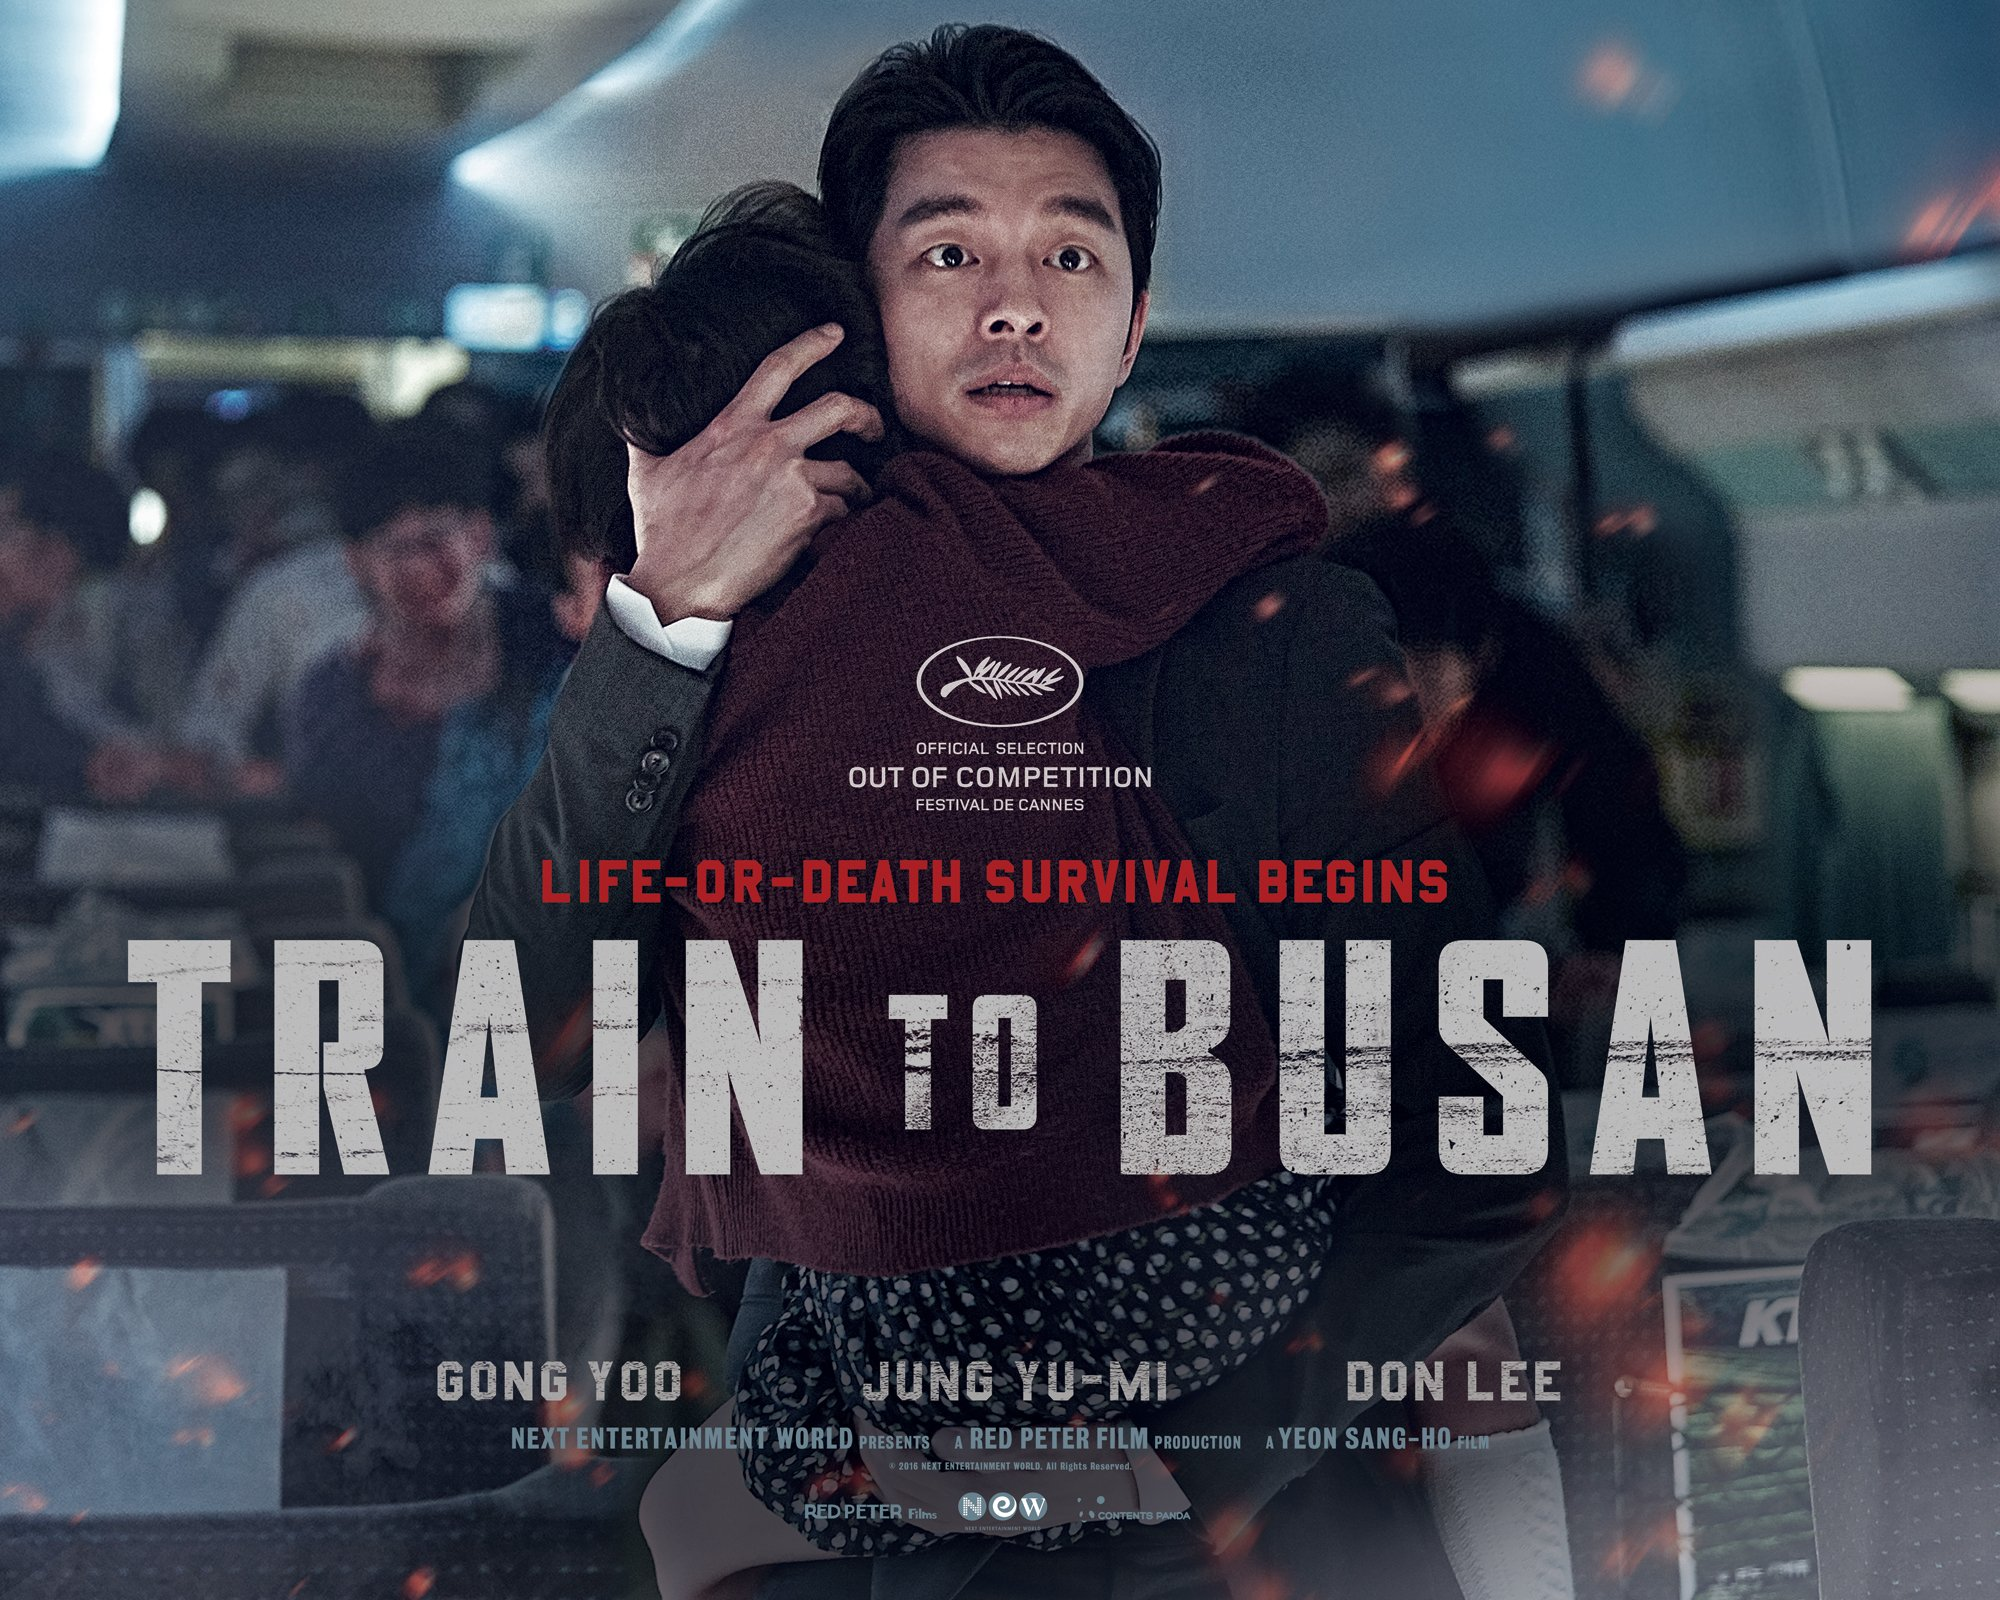 Korean Zombie Apocalypse Thriller TRAIN TO BUSAN Will Be Released In